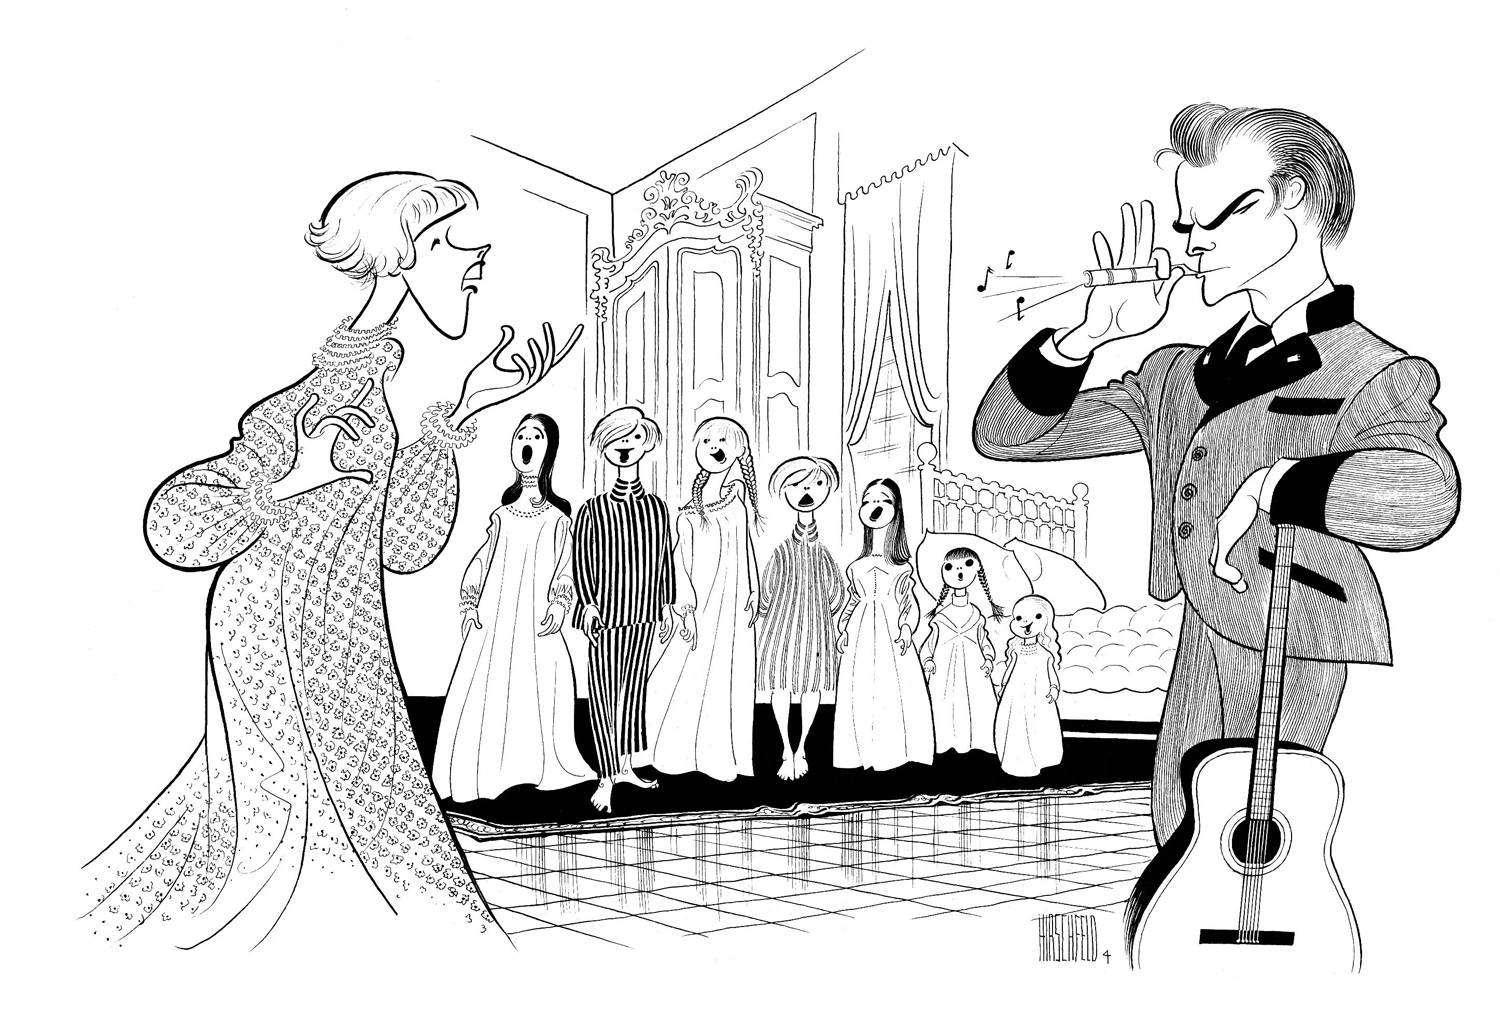 Line Drawing In Art : Al hirschfeld broadway s king of caricature illustration chronicles